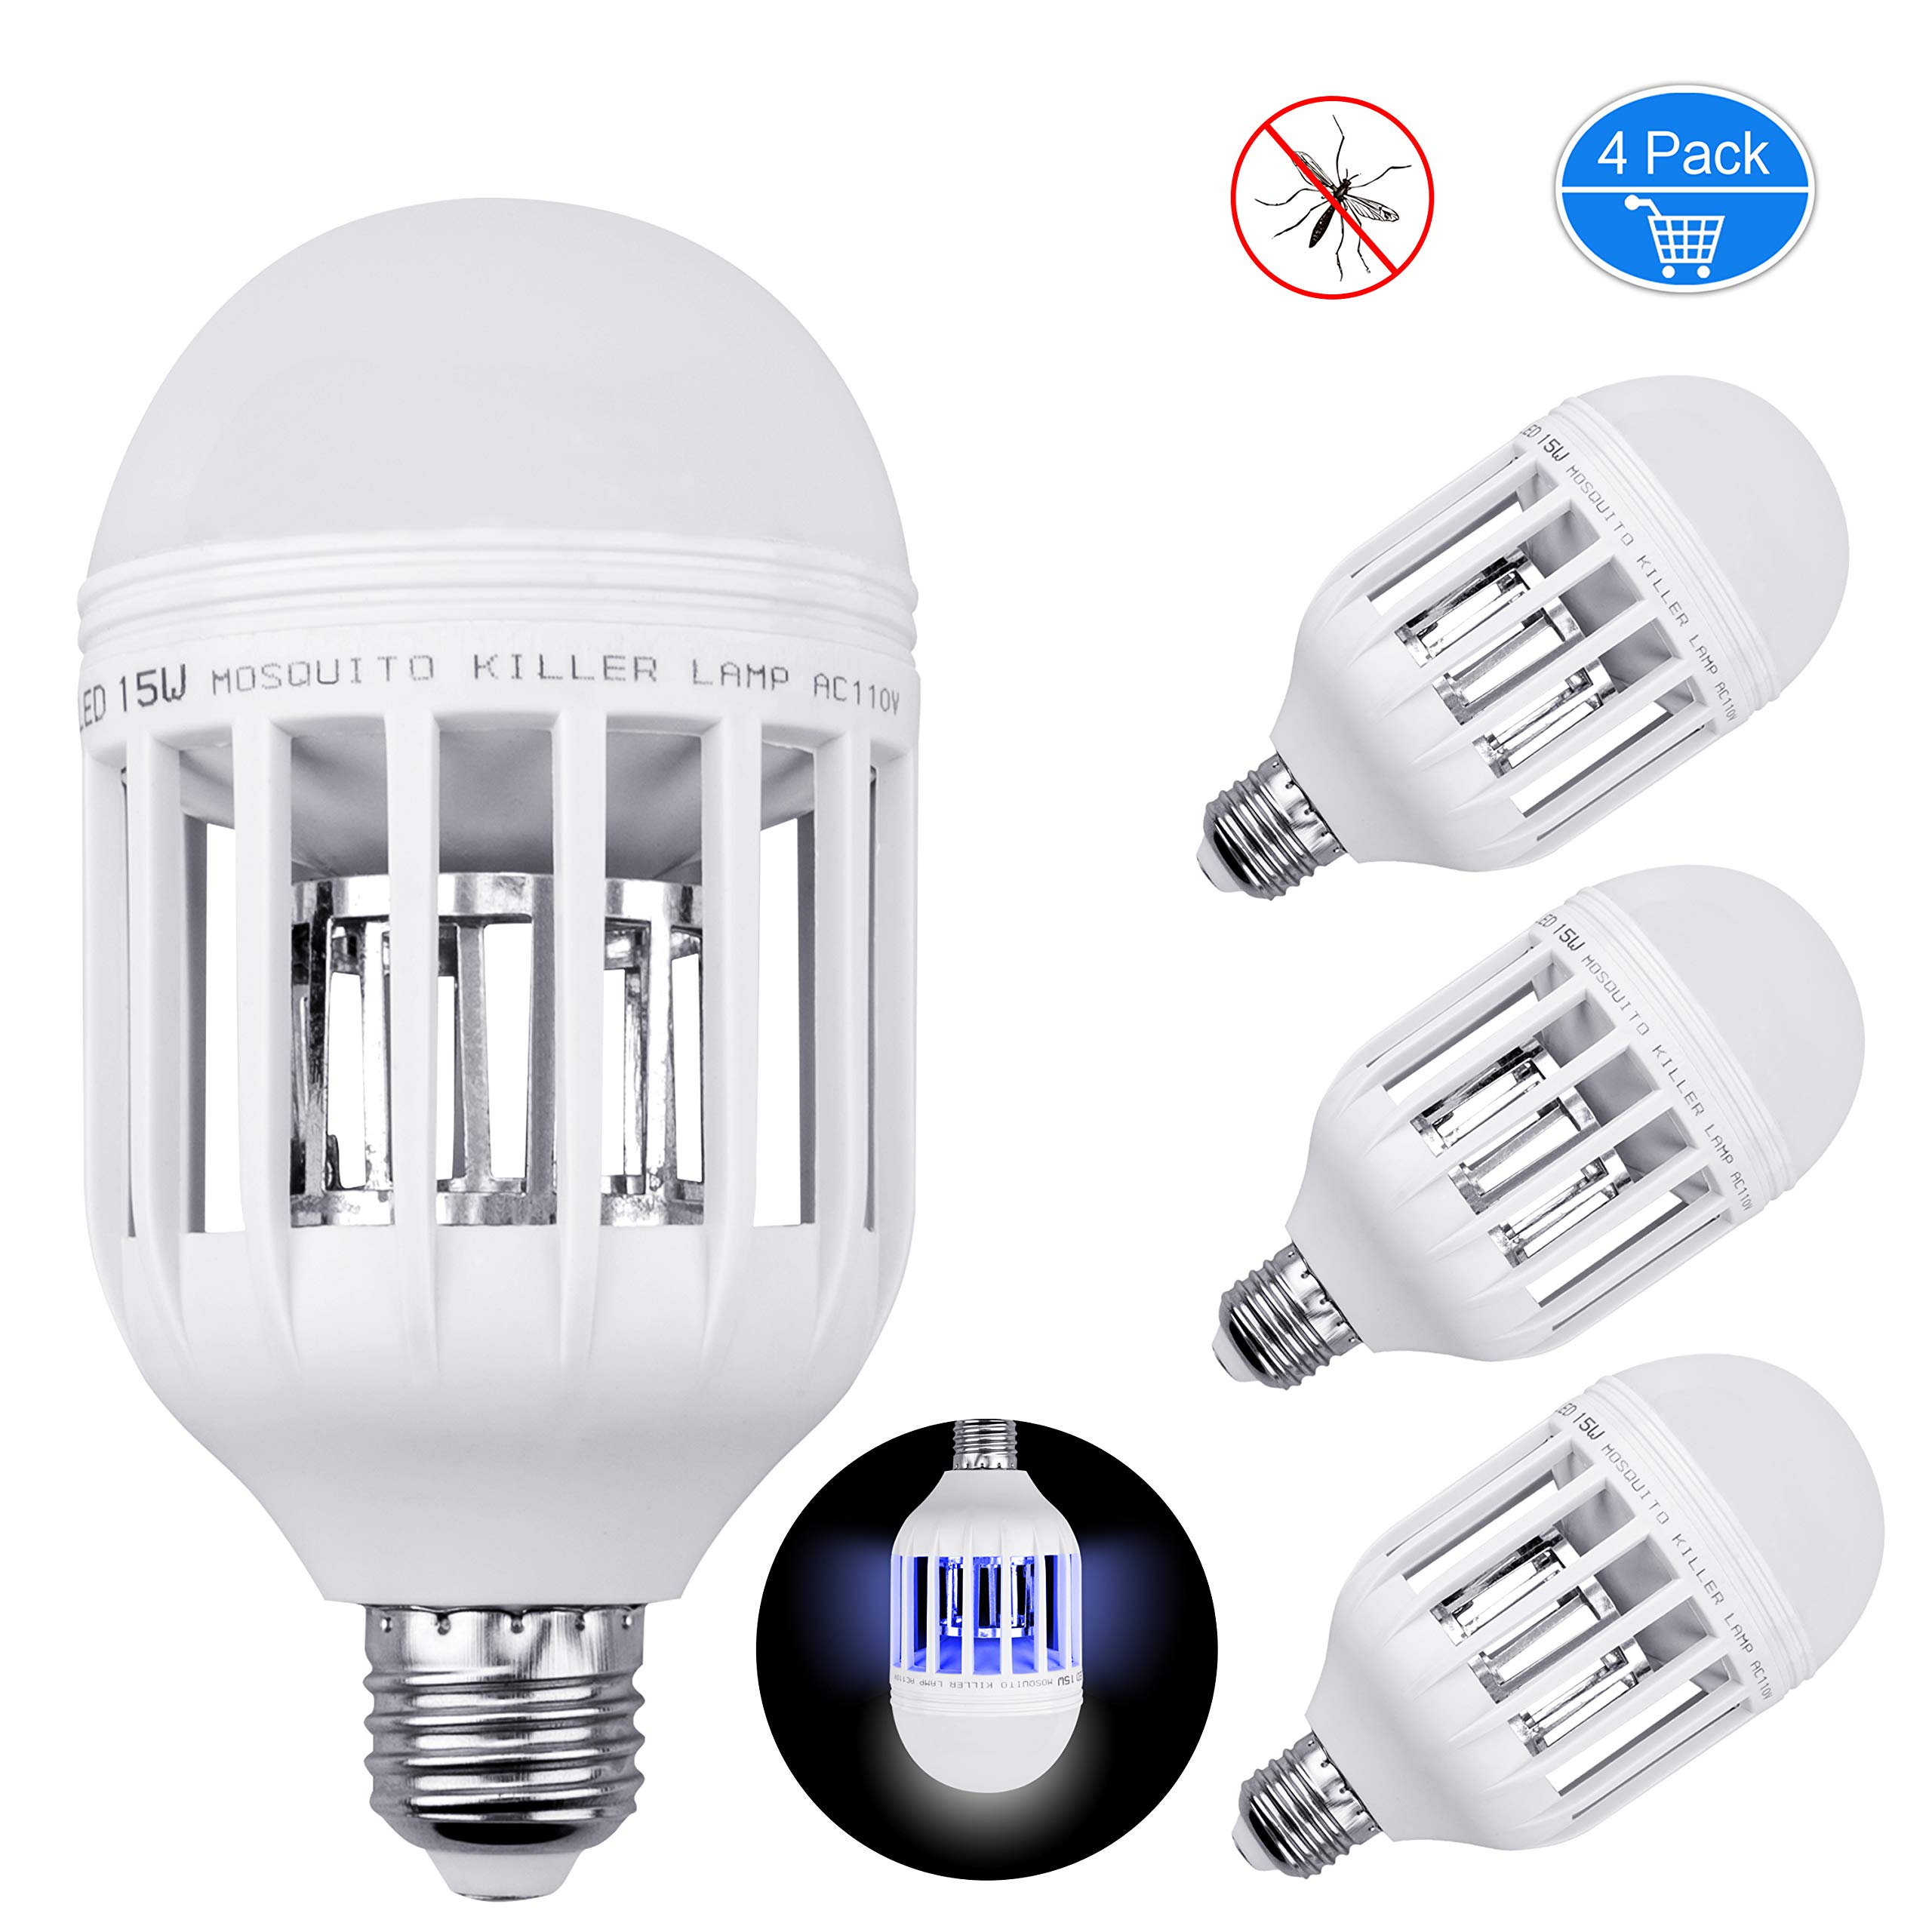 Inpher 4 Pack Bug Zapper Light Bulb, UV LED Mosquito Killer Lamp 1200LM 15W 2 in 1 Electronic Insect Killer, Fits in 110V E26 E27 Repellent Bulb Socket Base for Indoor Outdoor Porch Patio Backyard by Inpher